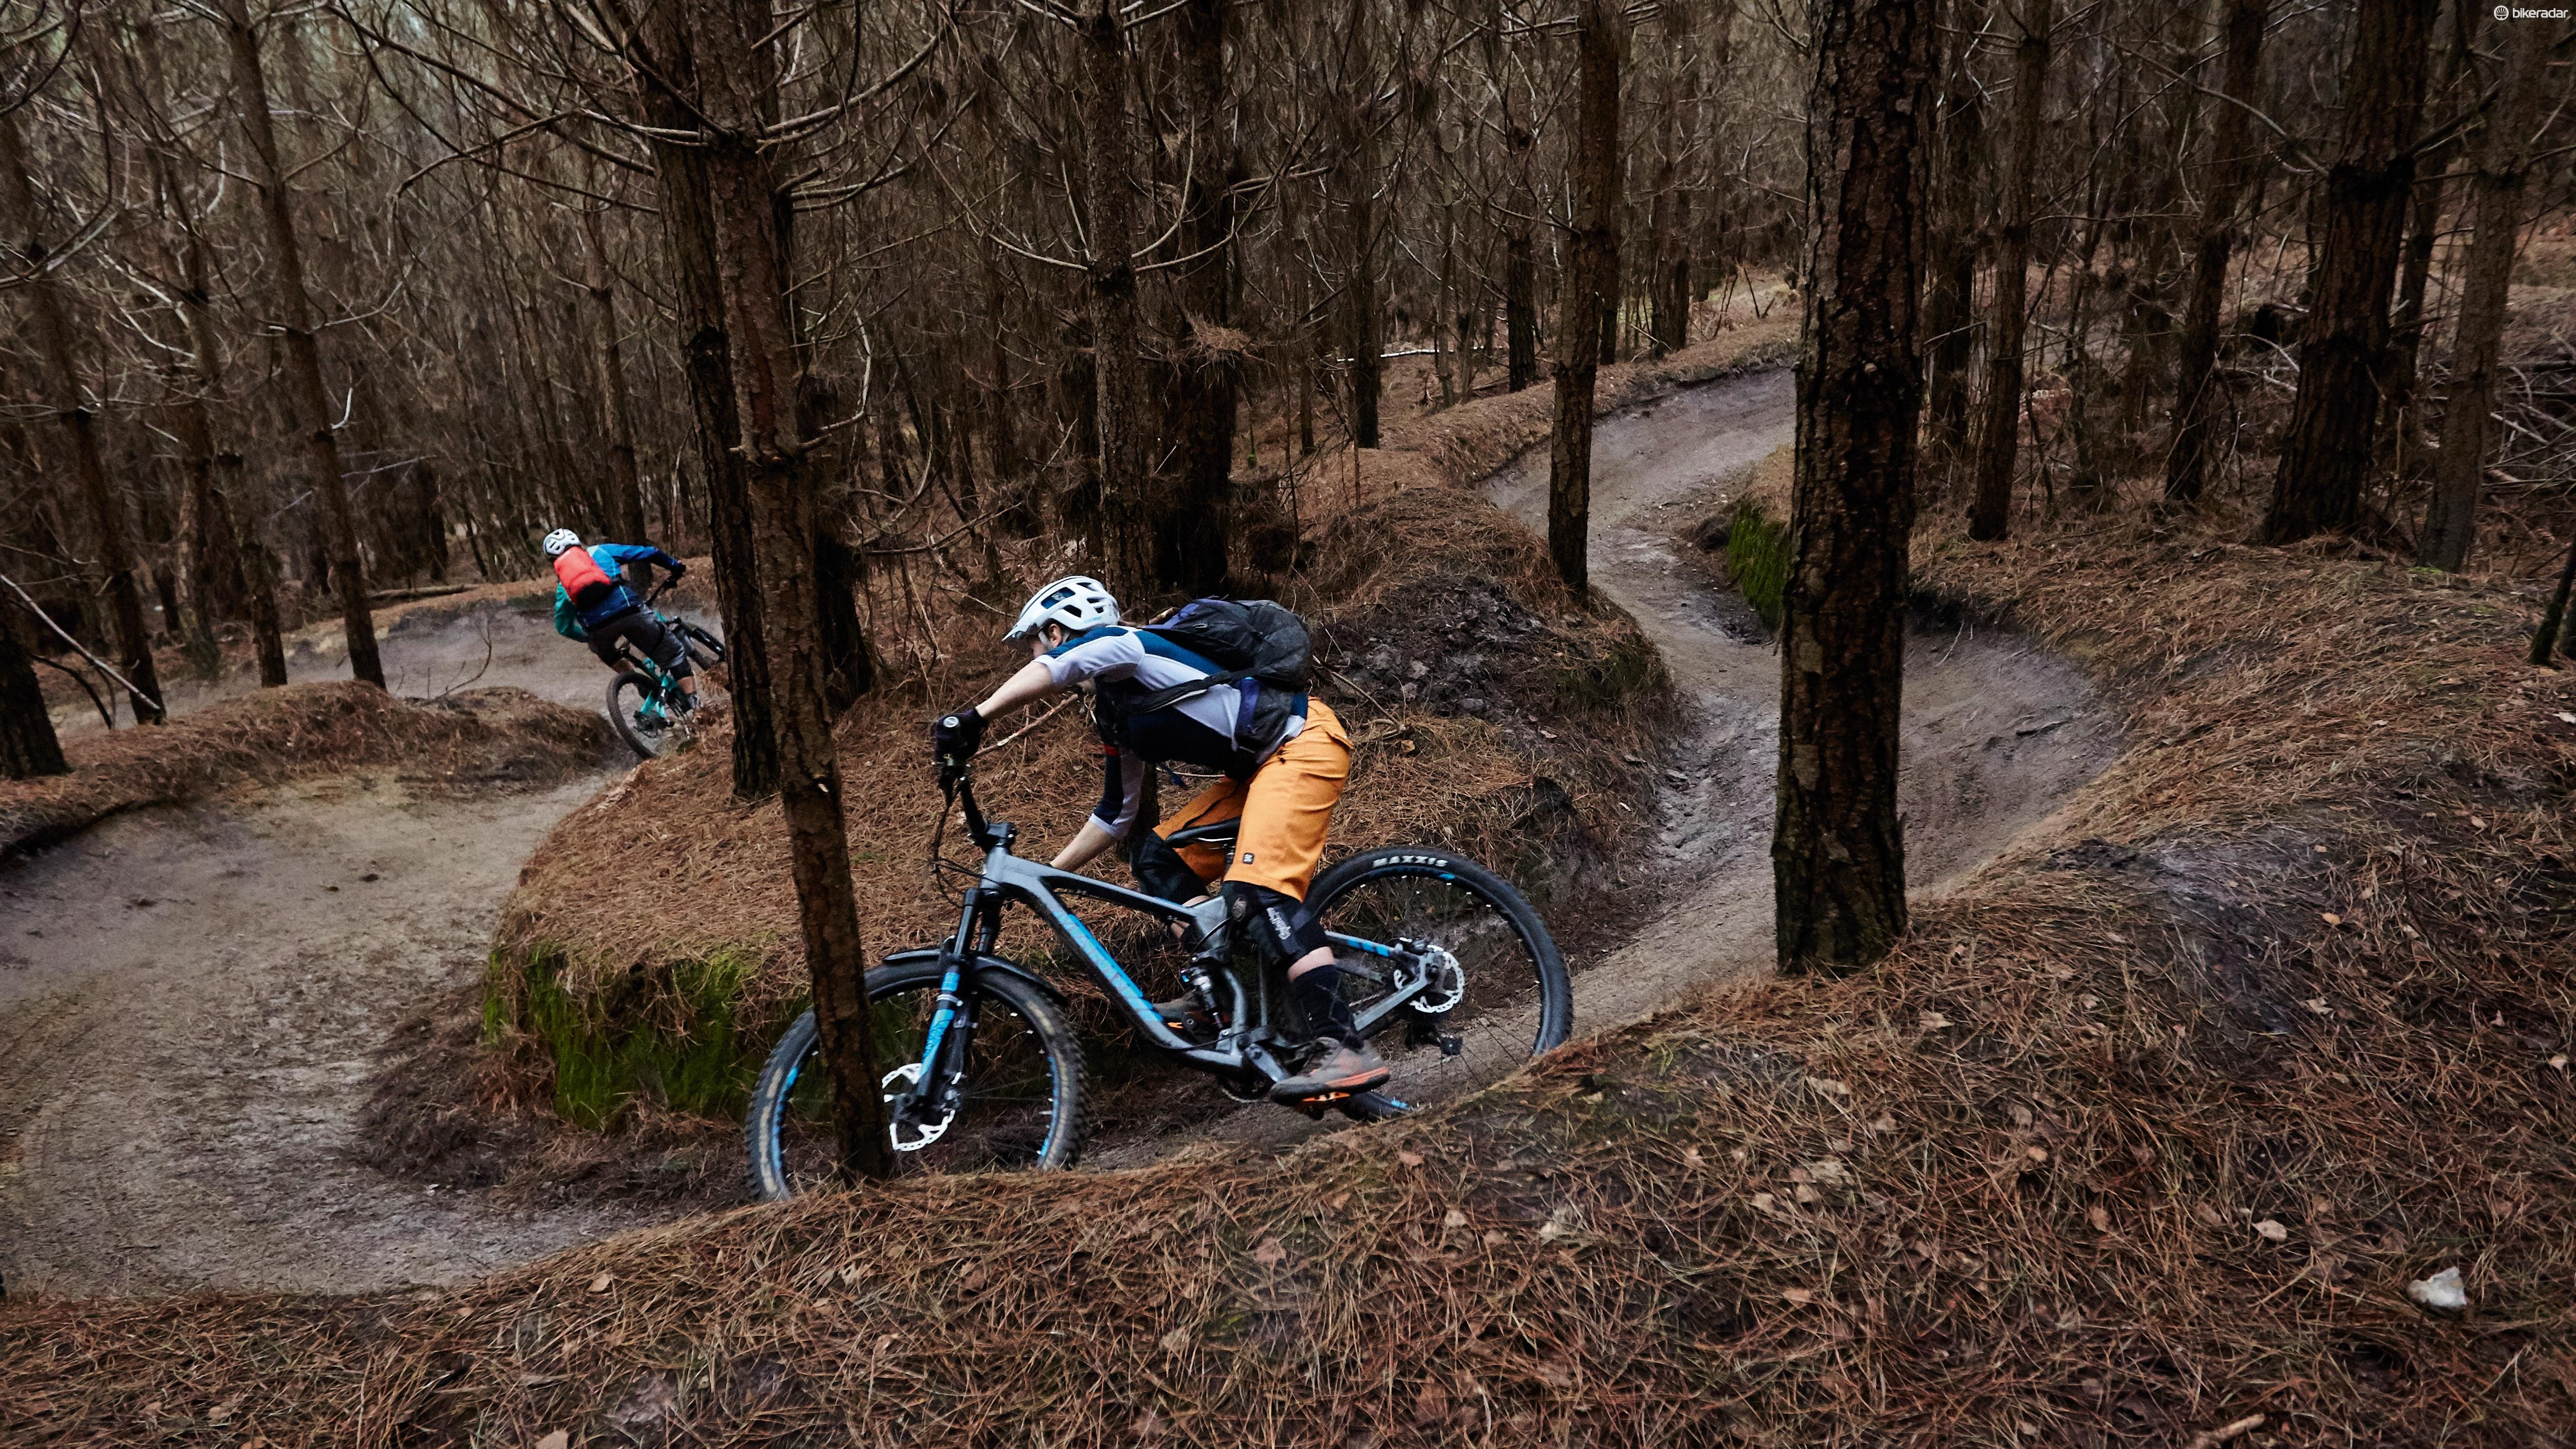 There may not be great elevation, but it's used effectively at Swinley Forest